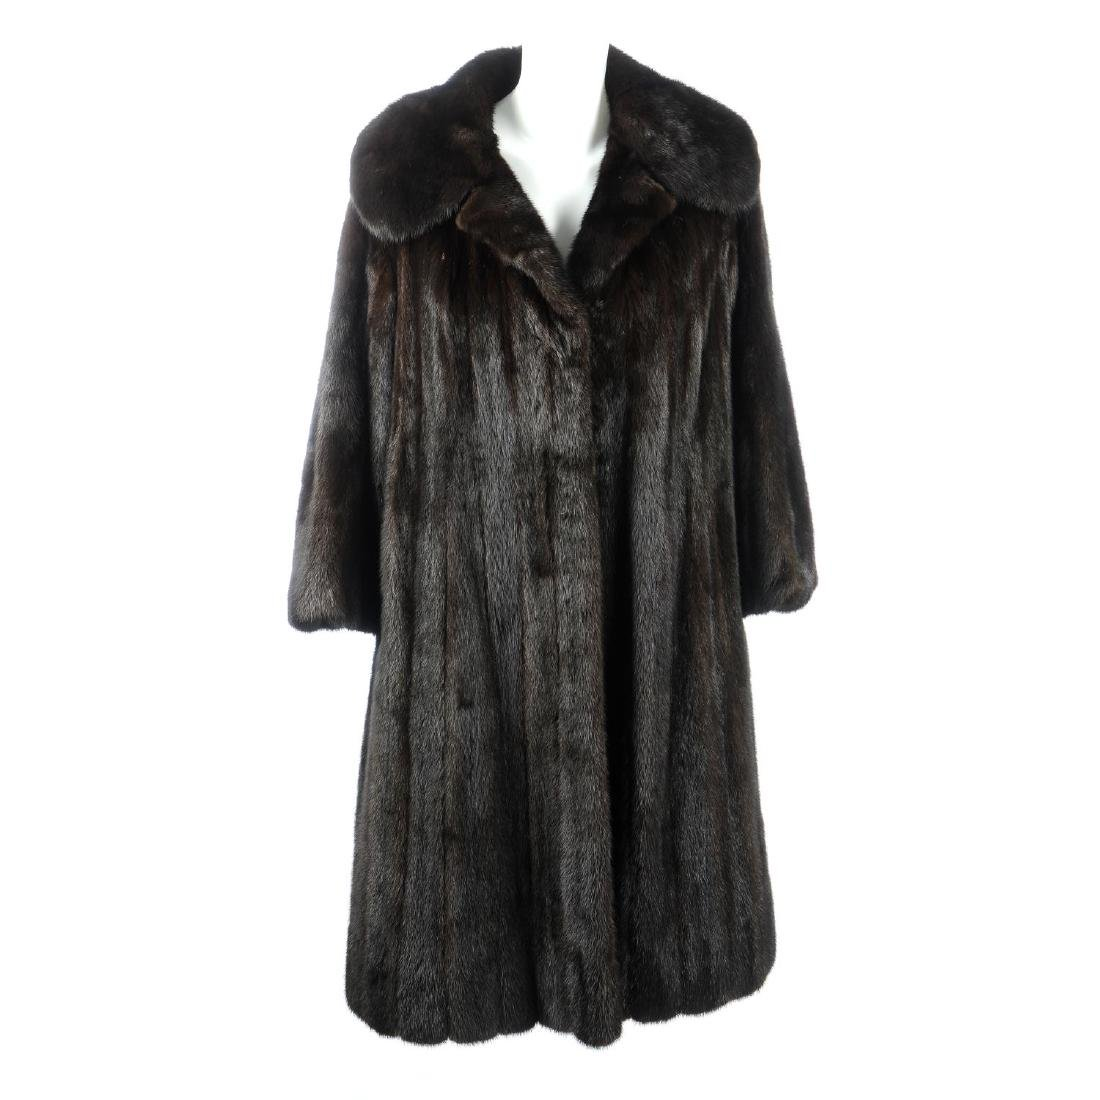 A dark ranch mink full-length coat. Featuring a notched